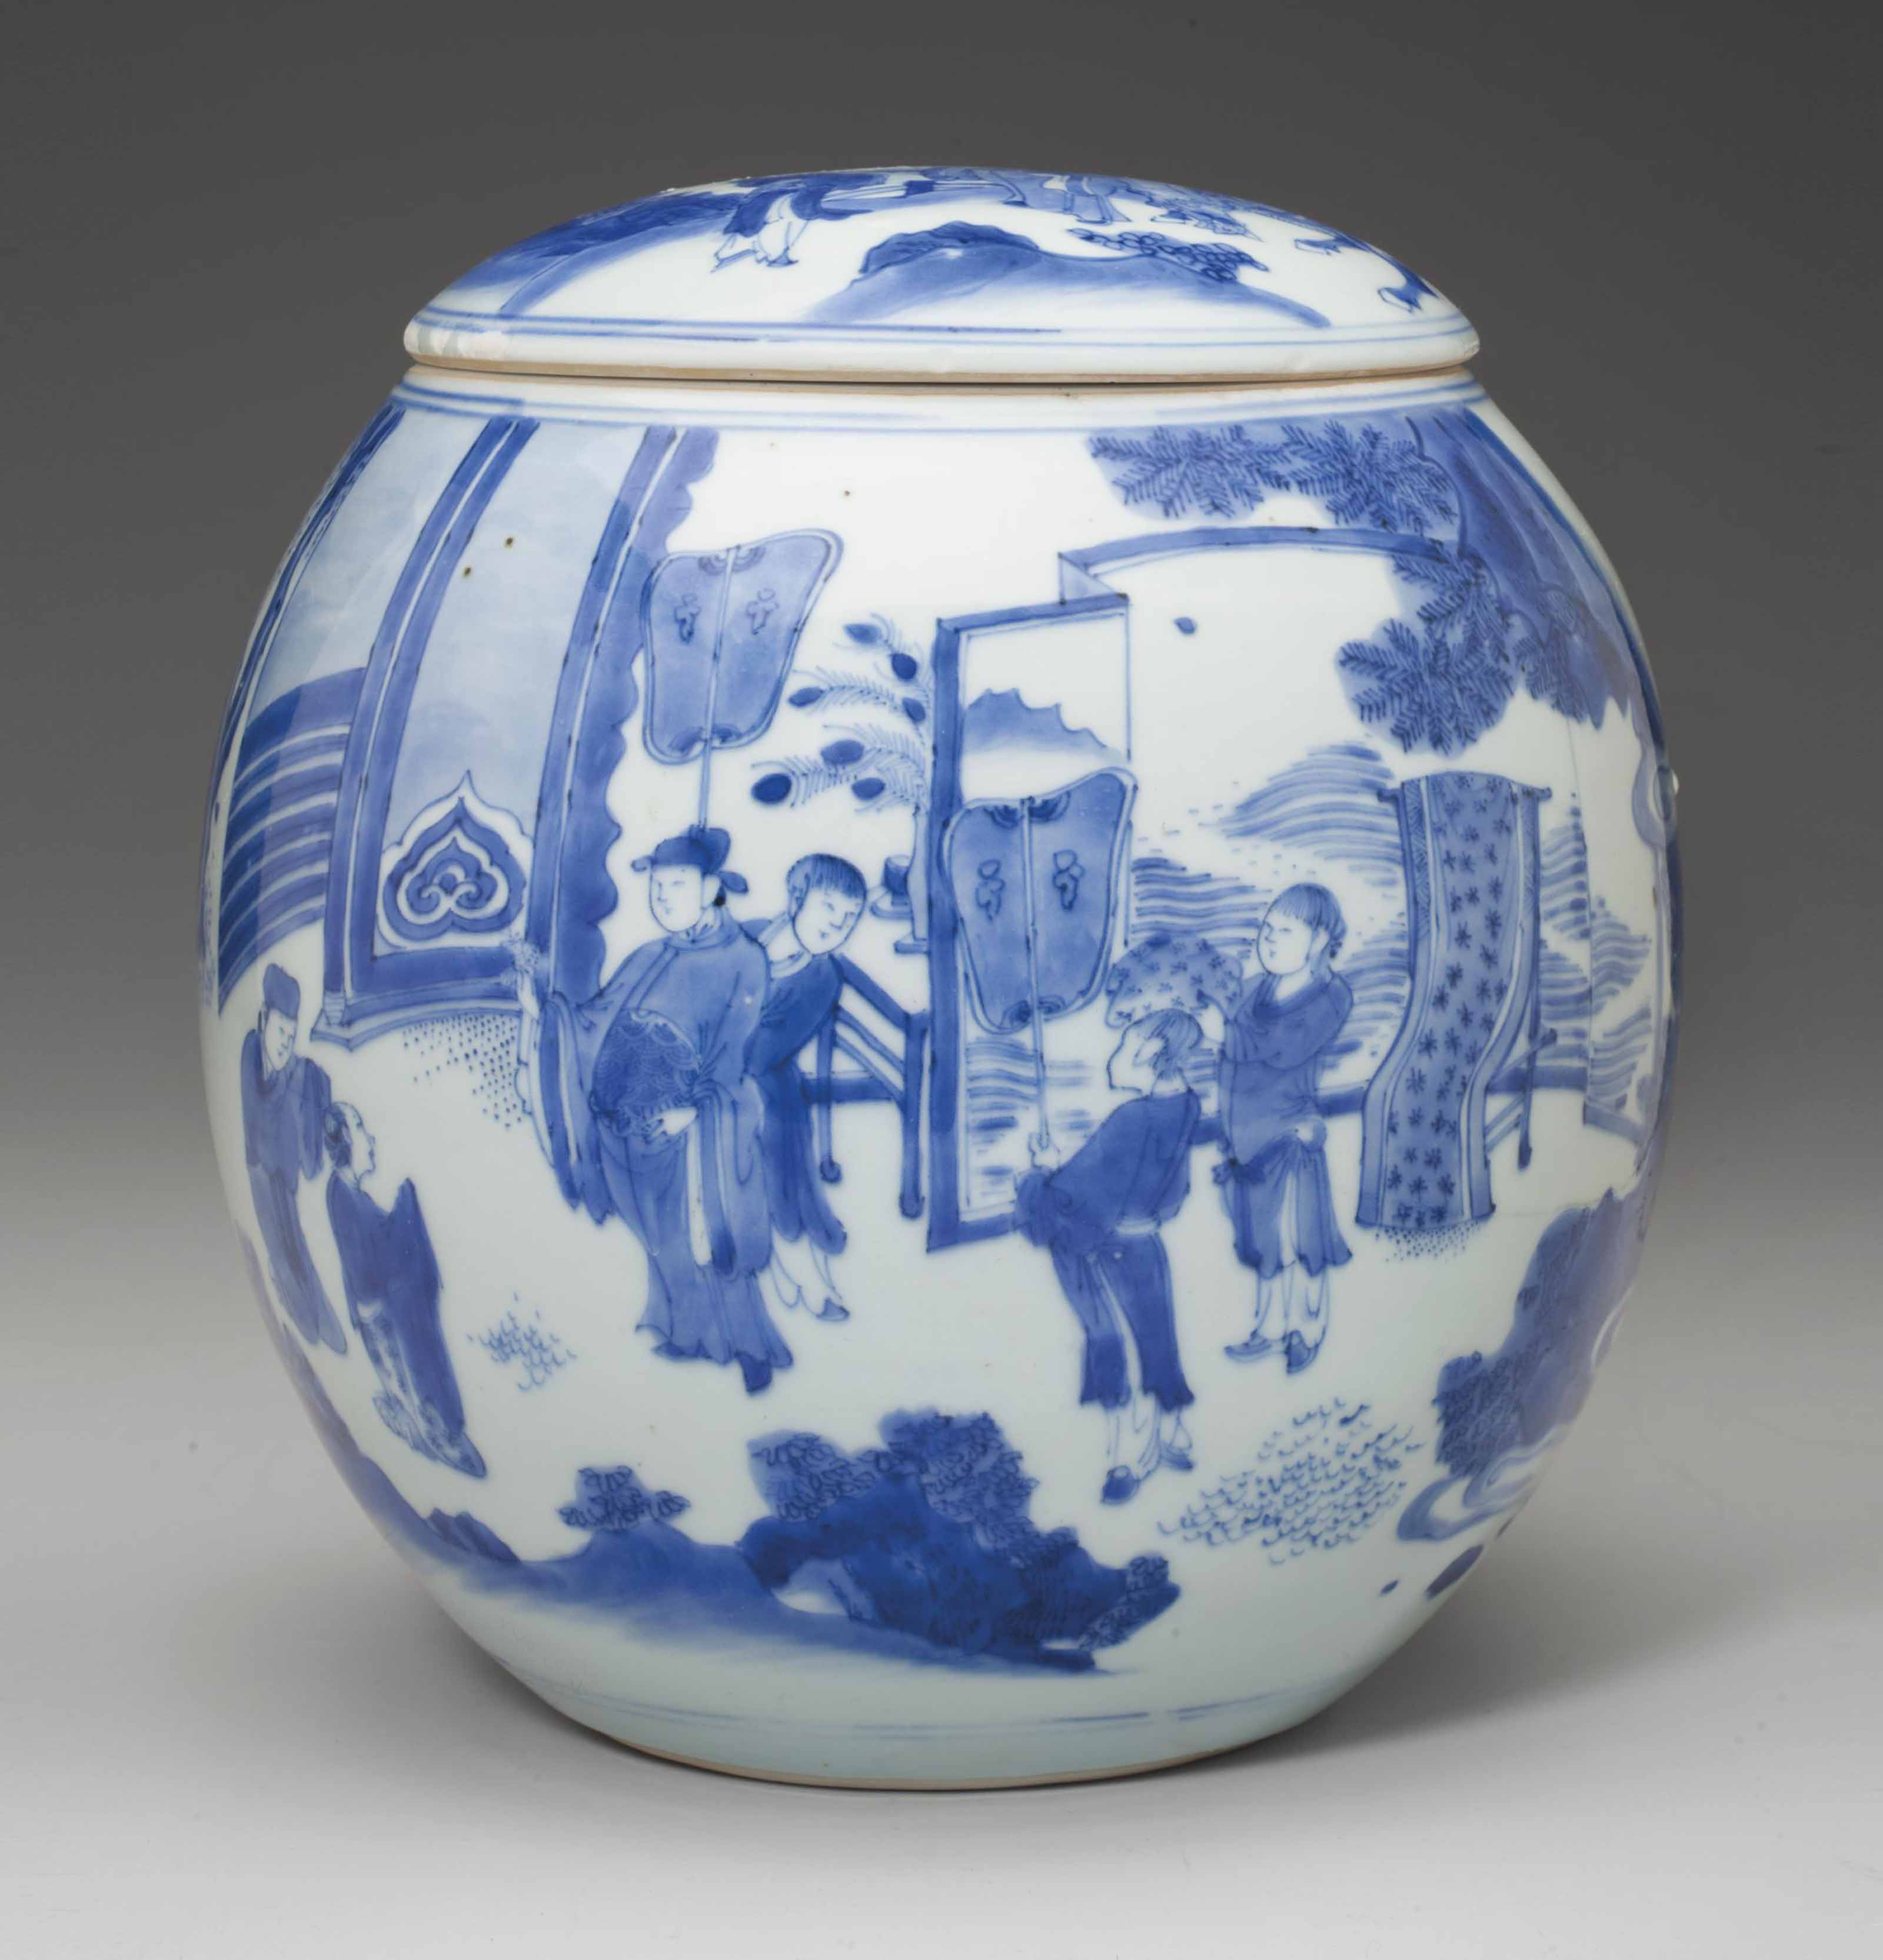 A RARE BLUE AND WHITE JAR AND